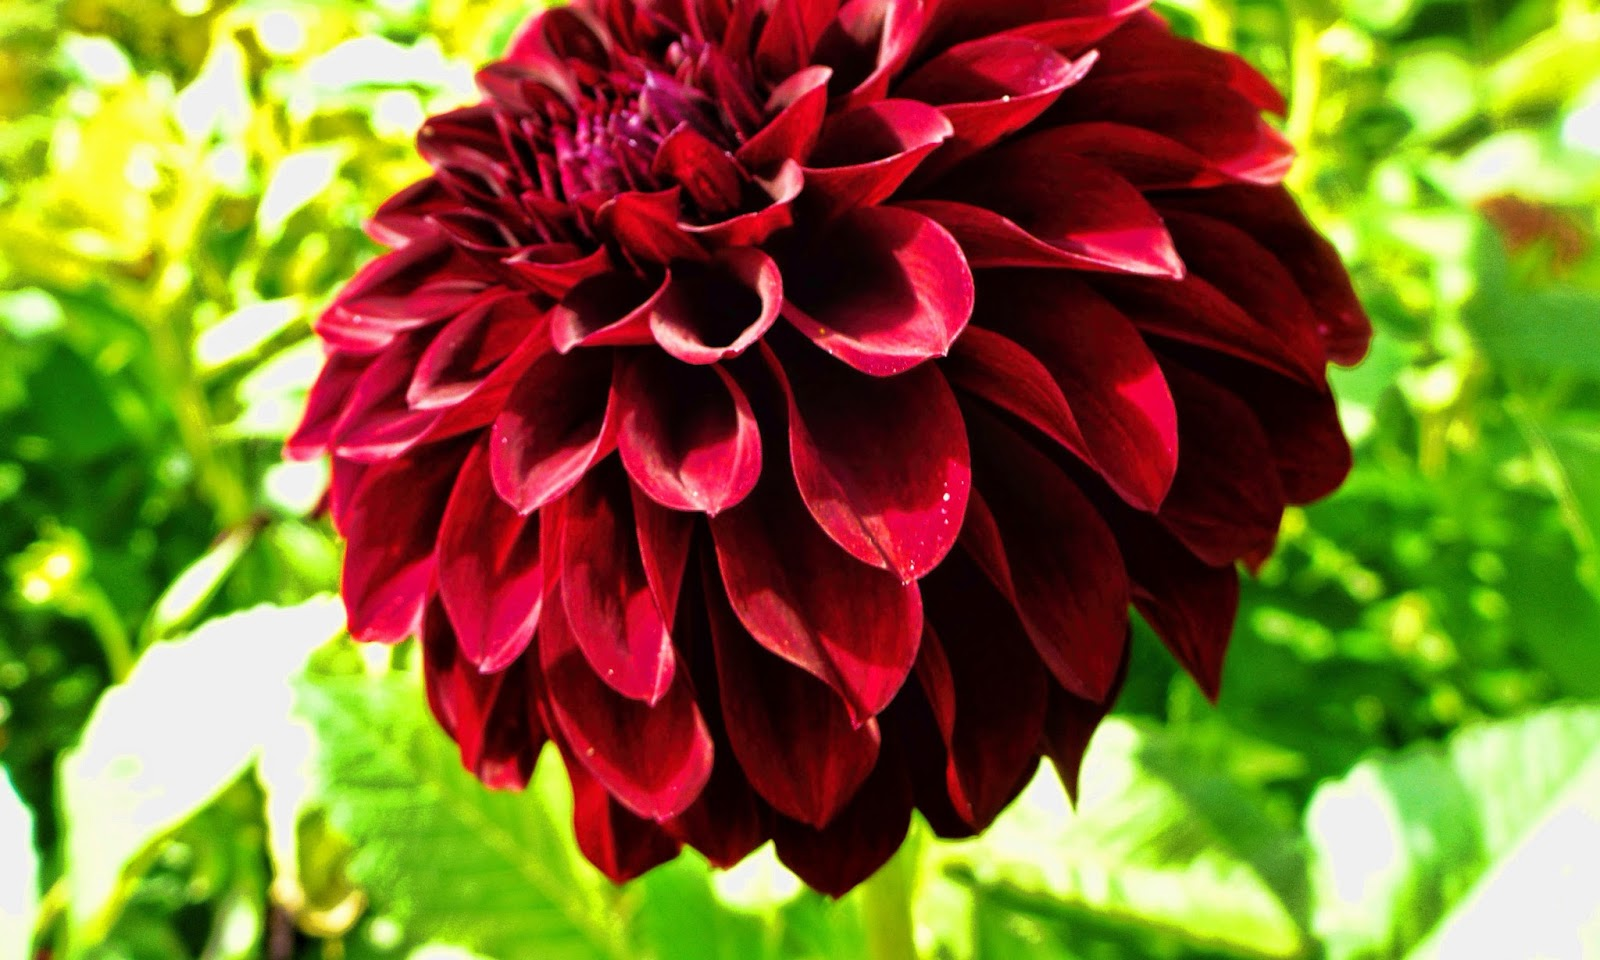 Dahlia Flower Dahlia Flower Hd Wallpapers Hd Wallpapers High